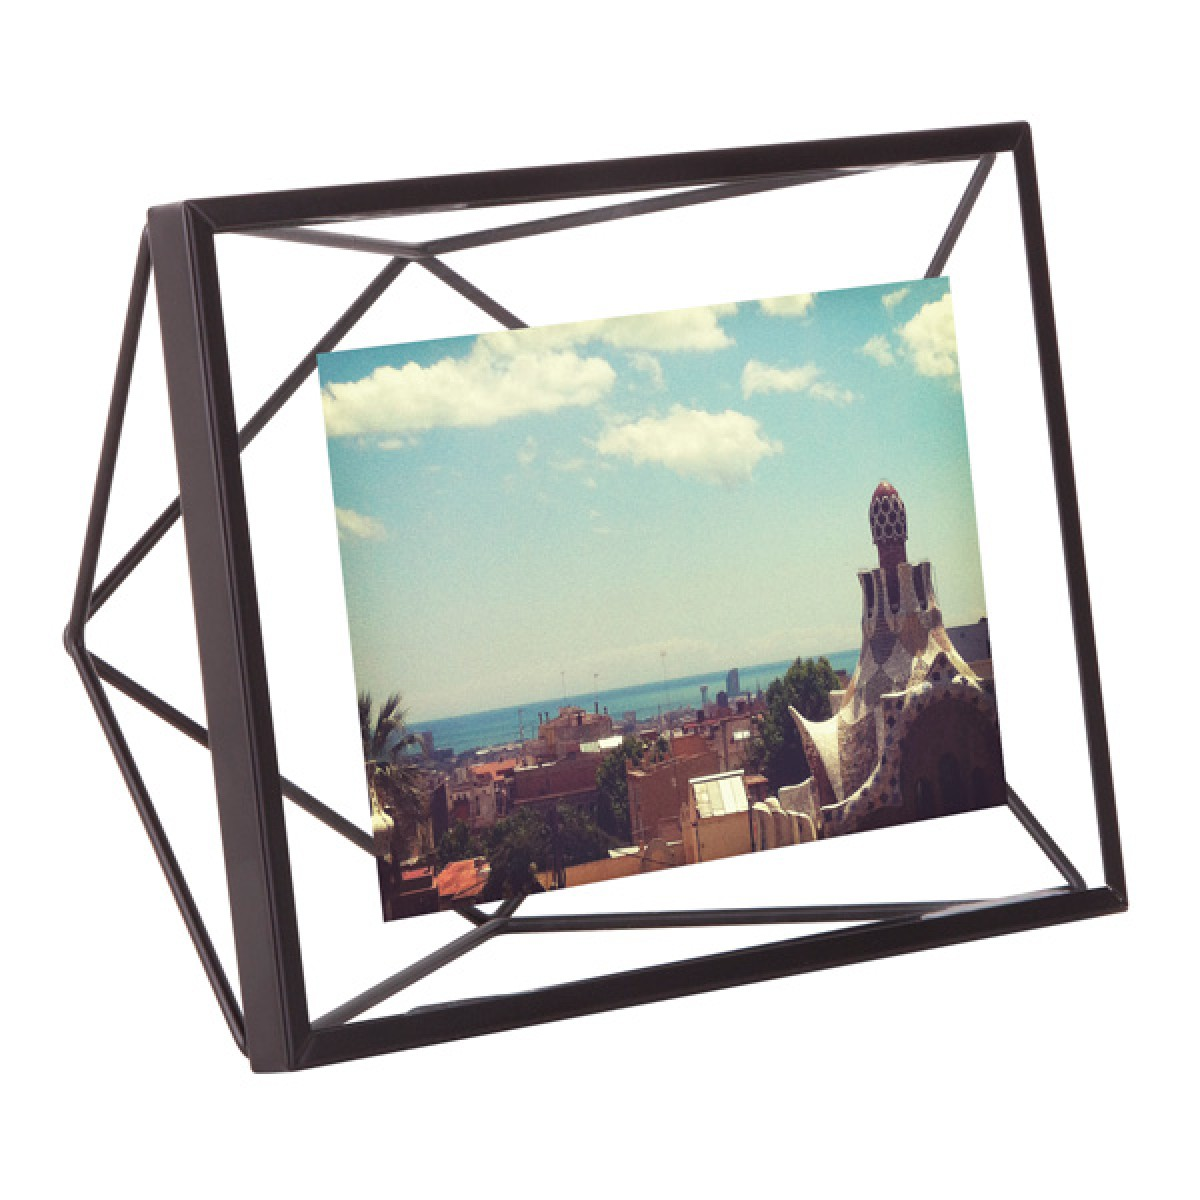 umbra products  photo frames  home accessories - umbra prisma photo frame x  black  geometric photo display